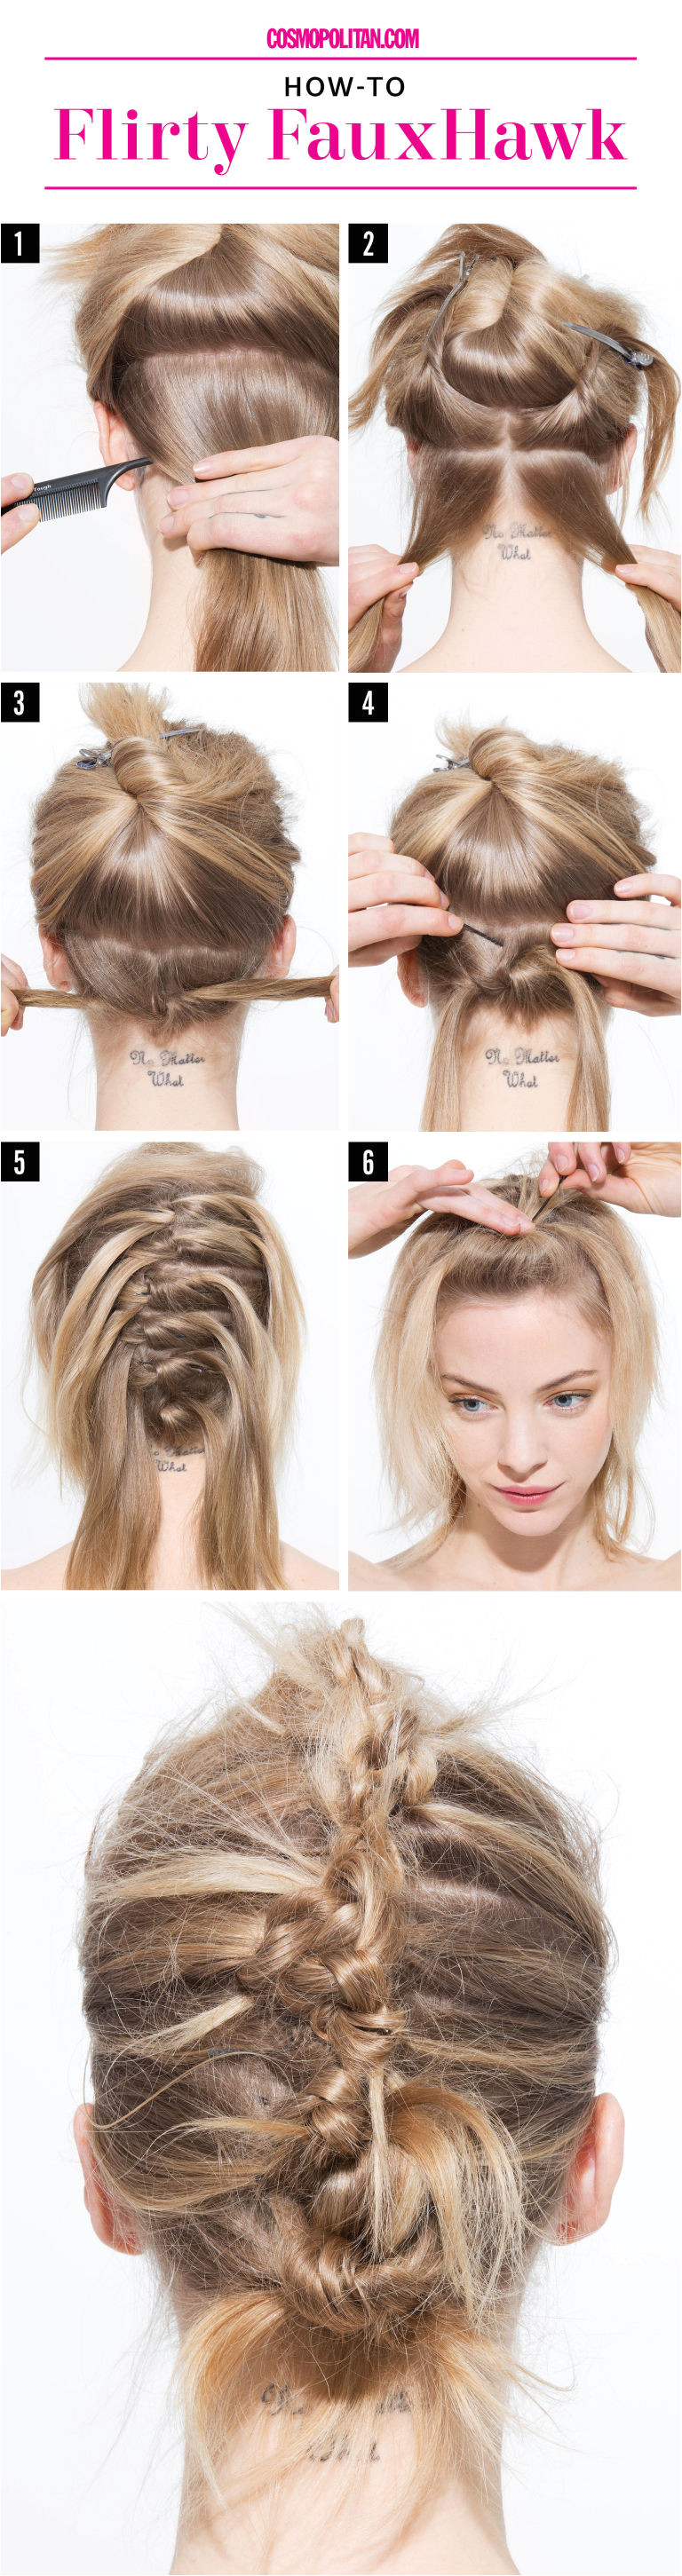 Easy Hairstyles to Do for Homecoming 4 Last Minute Diy evening Hairstyles that Will Leave You Looking Hot